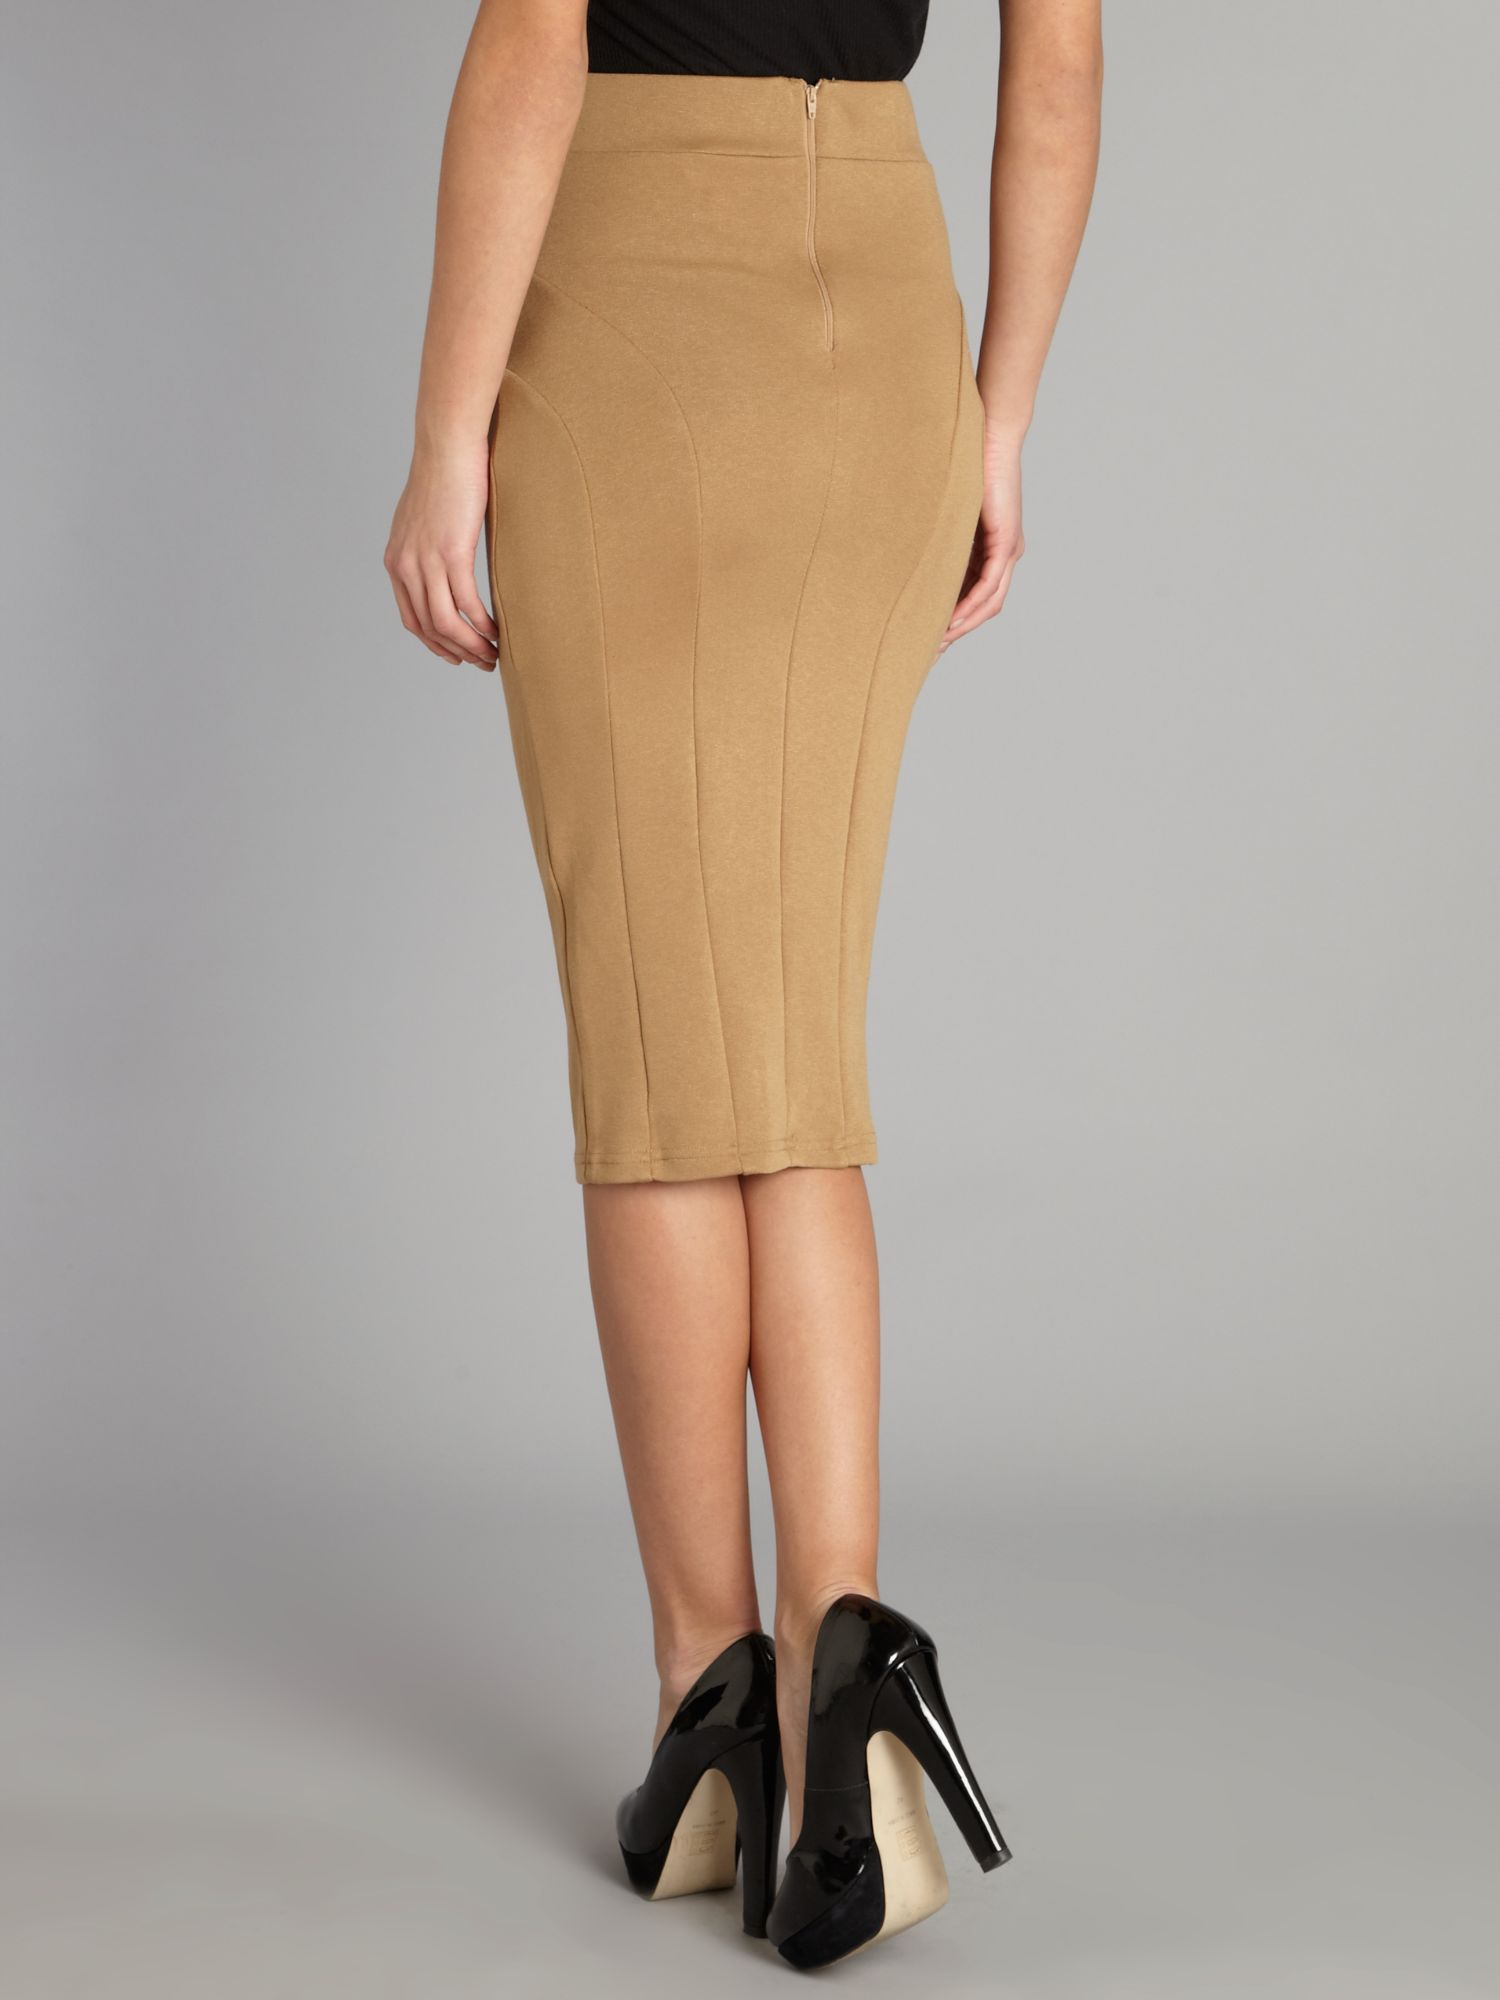 Camel brown pencil skirt – Modern skirts blog for you